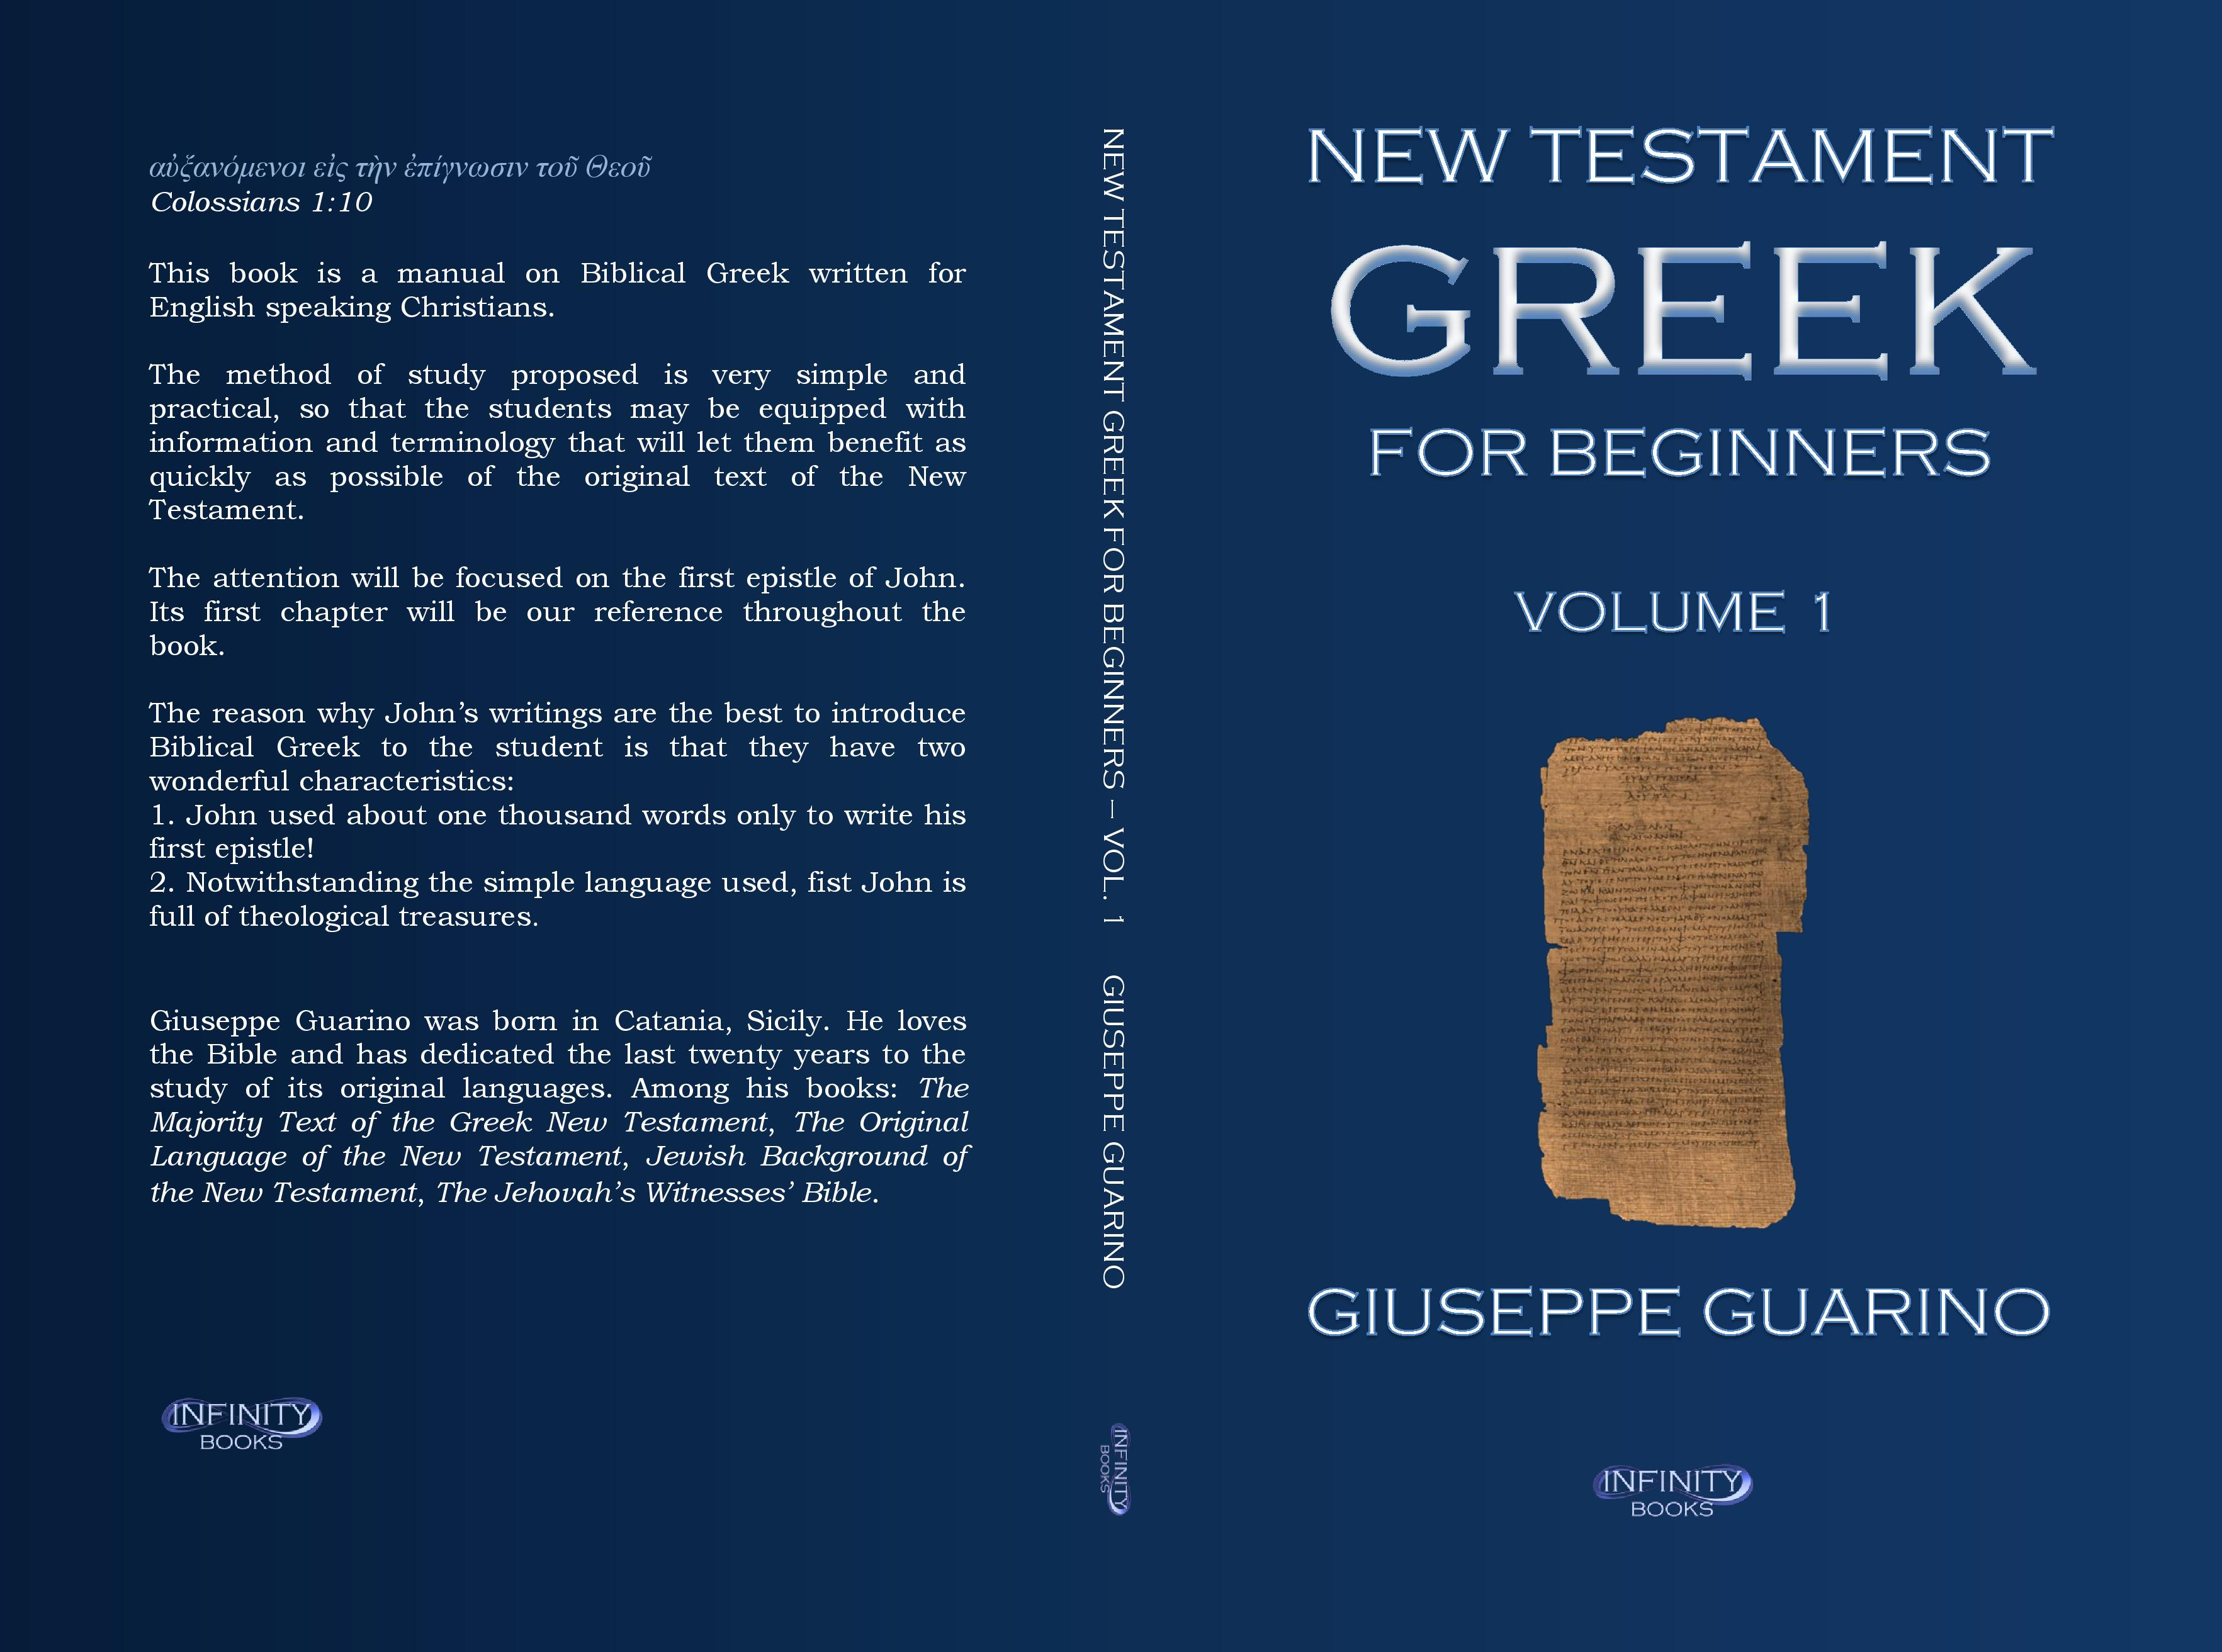 Homosexuality in the New Testament